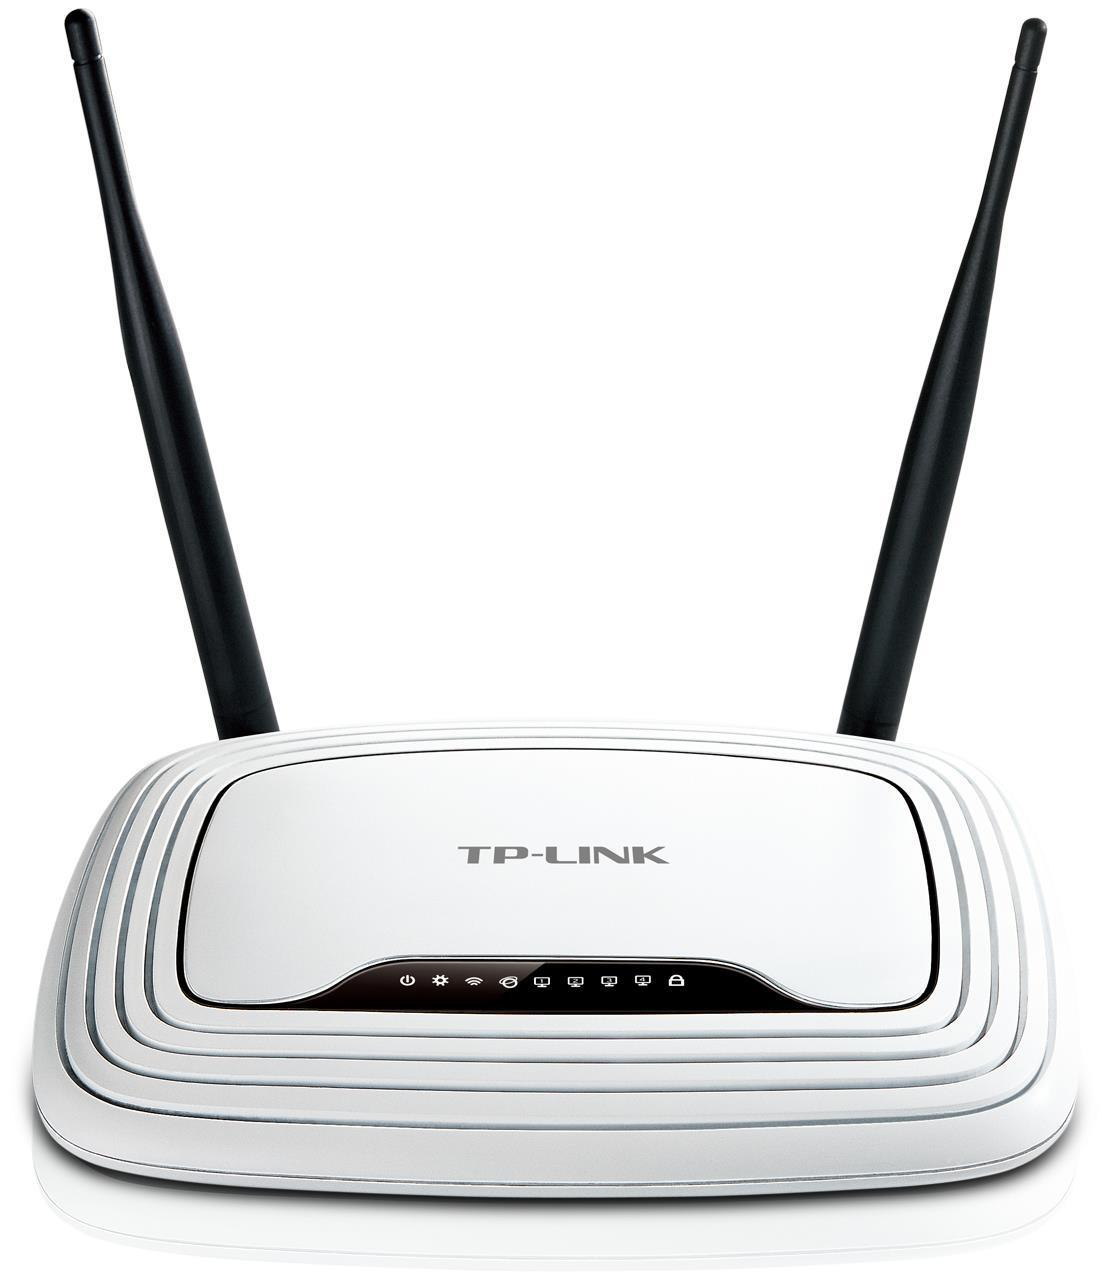 TP-Link TL-WR841N Wireless N Cable DSL Virgin Router